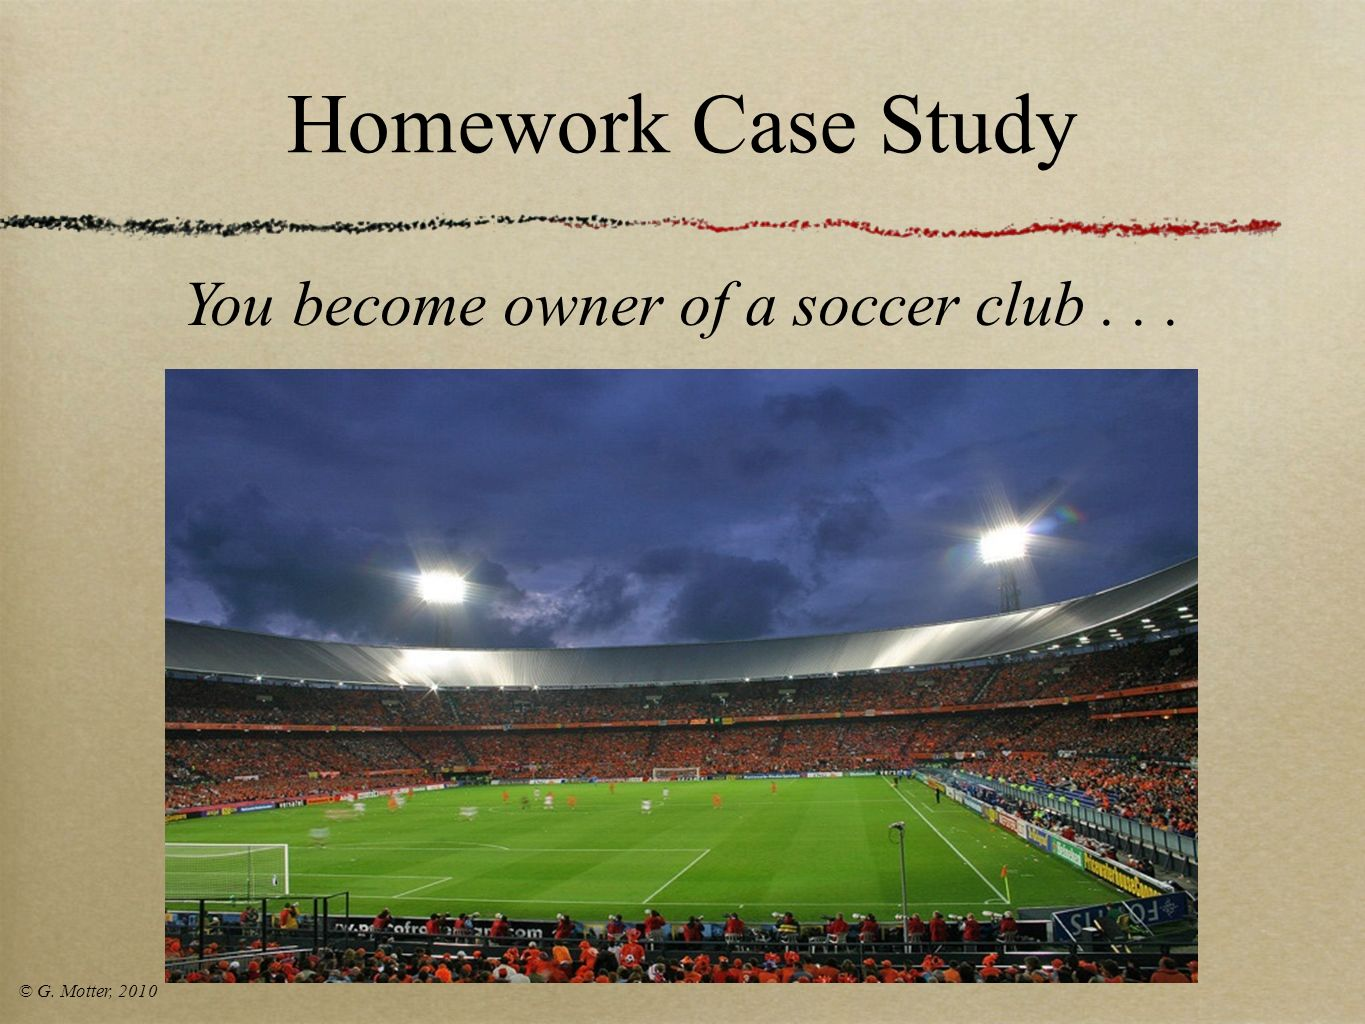 You become owner of a soccer club . . .